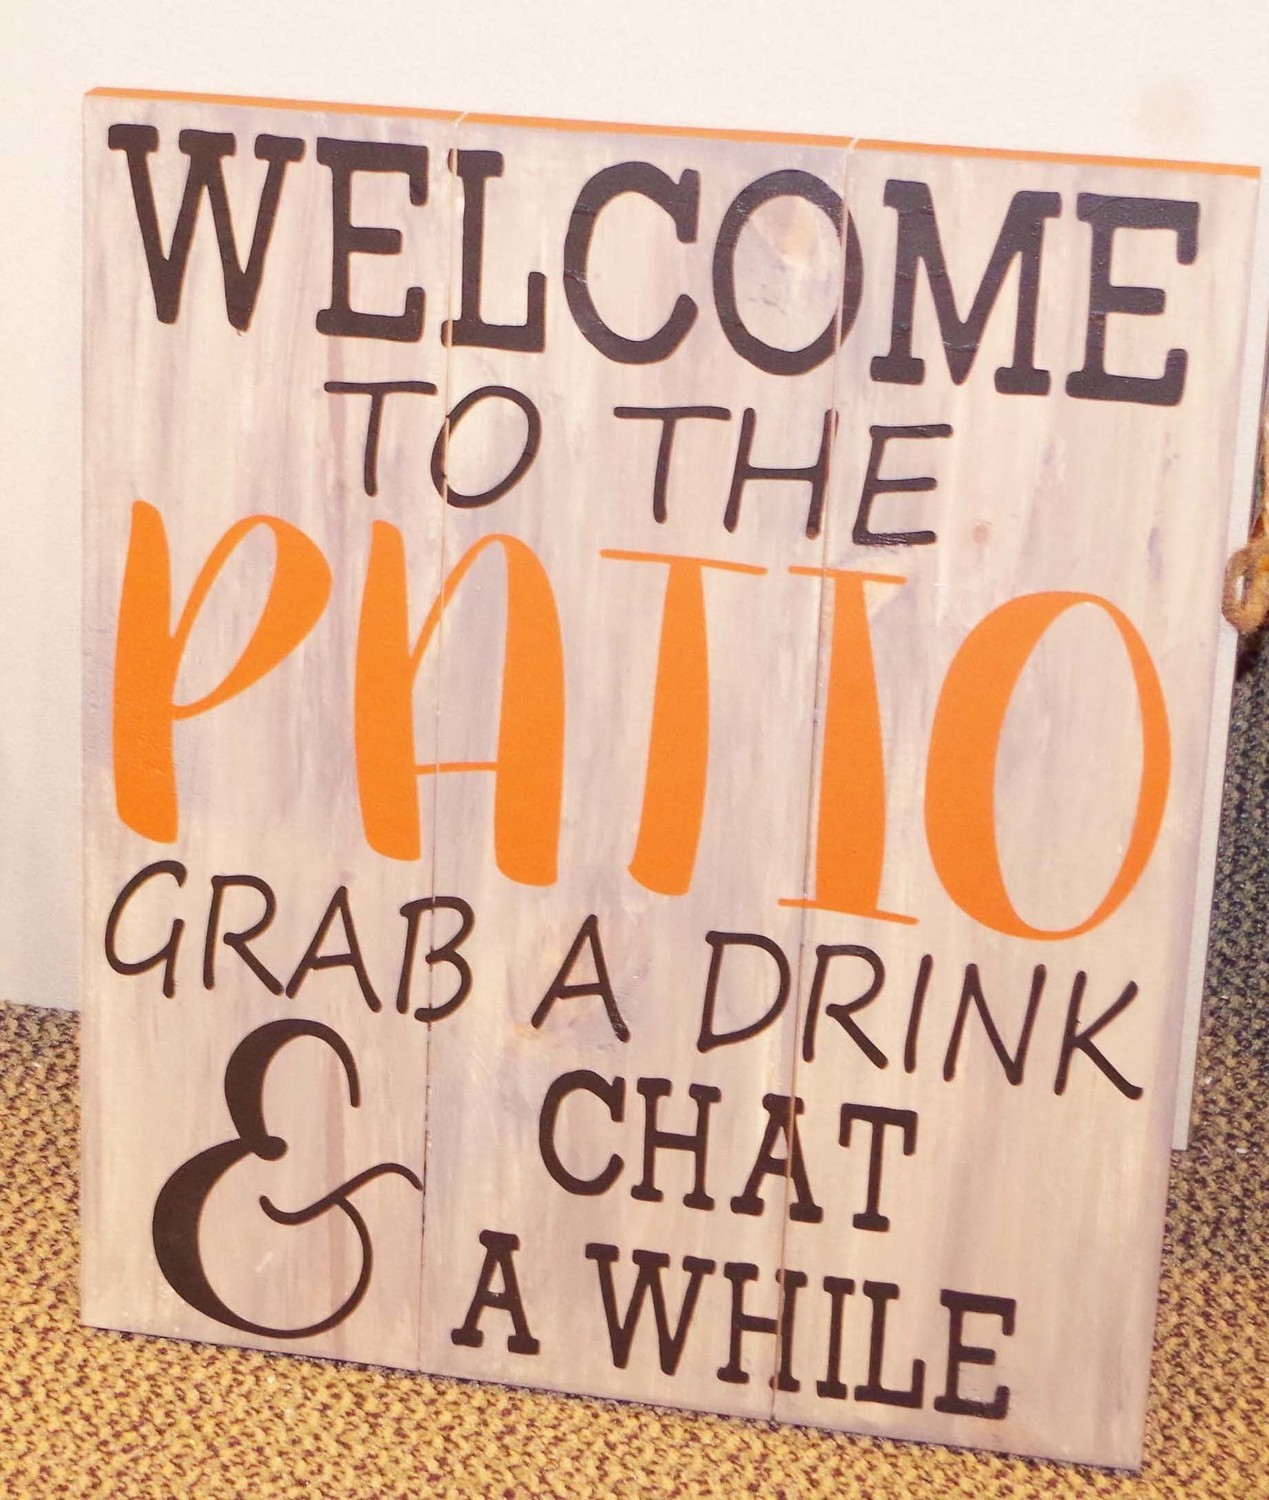 Welcome to the Patio